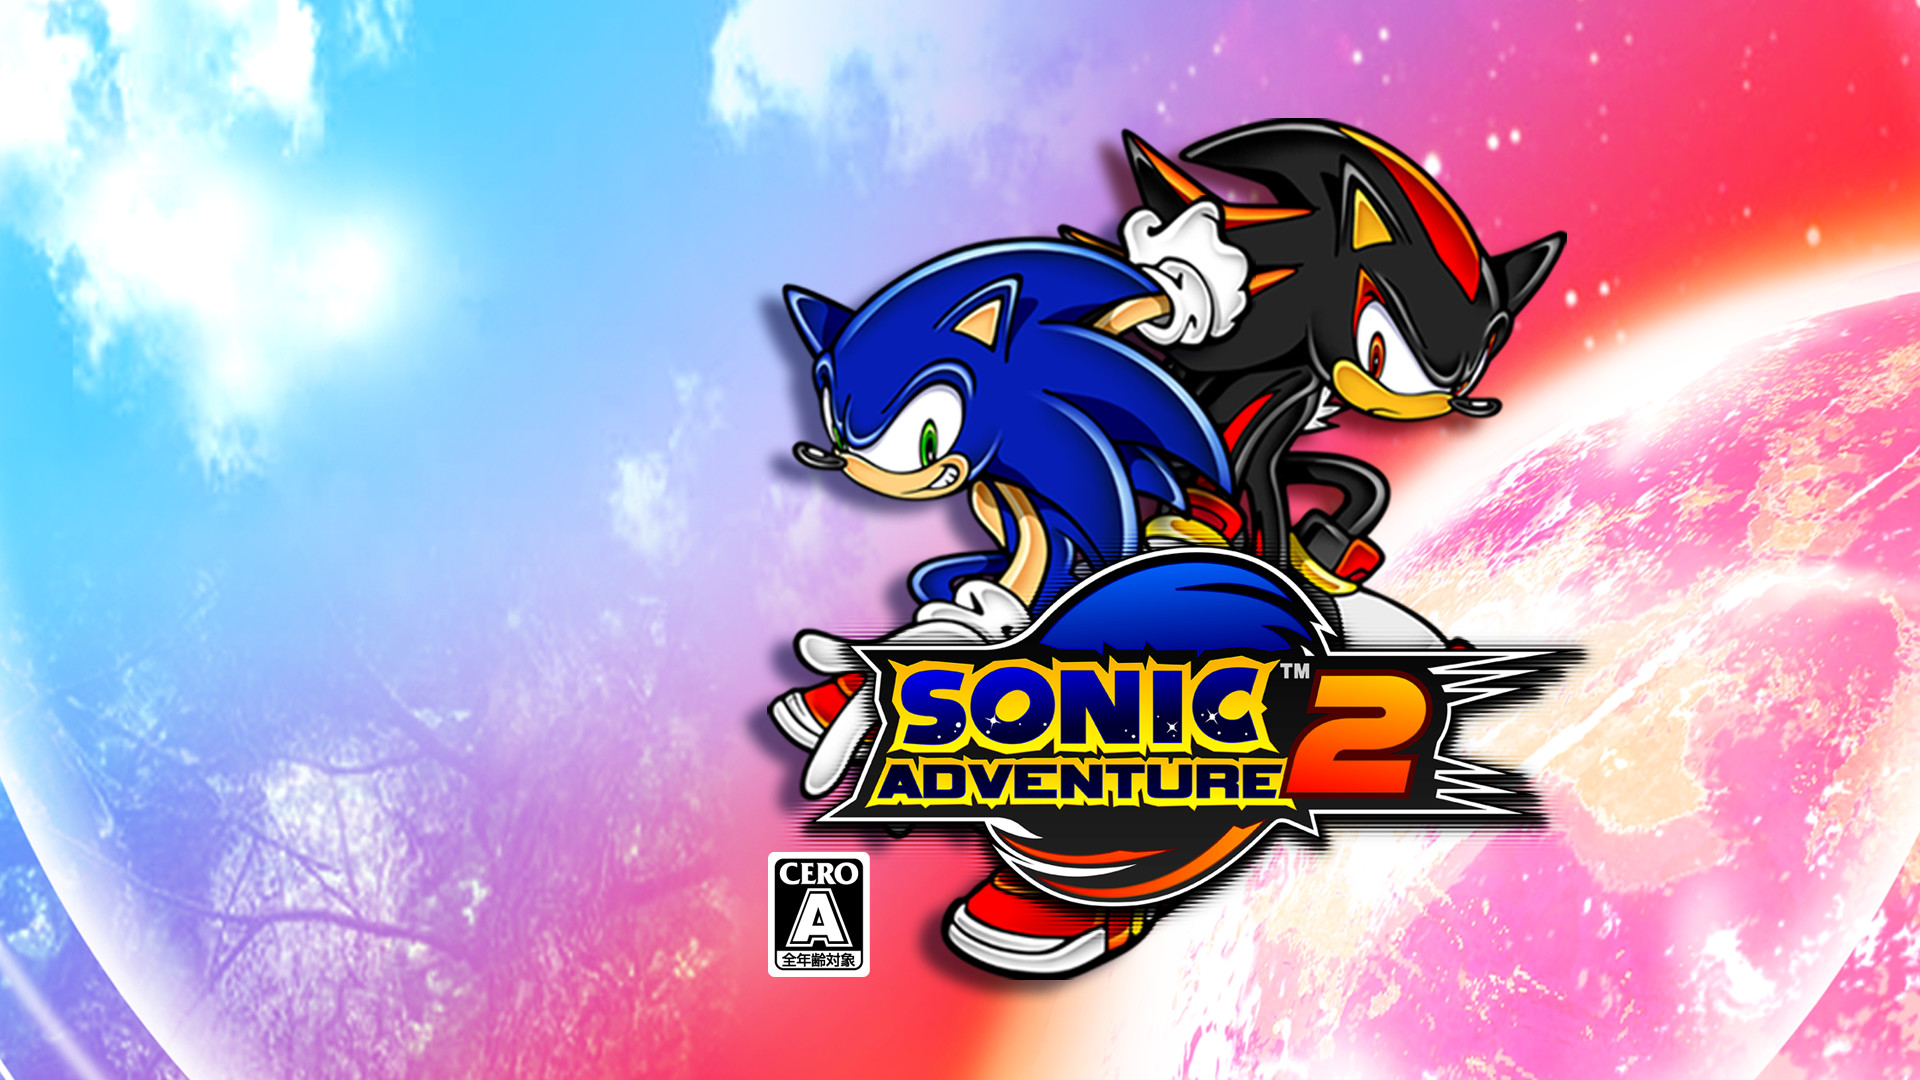 1920x1080 Video Game - Sonic Adventure 2 Sonic the Hedgehog Shadow Wallpaper